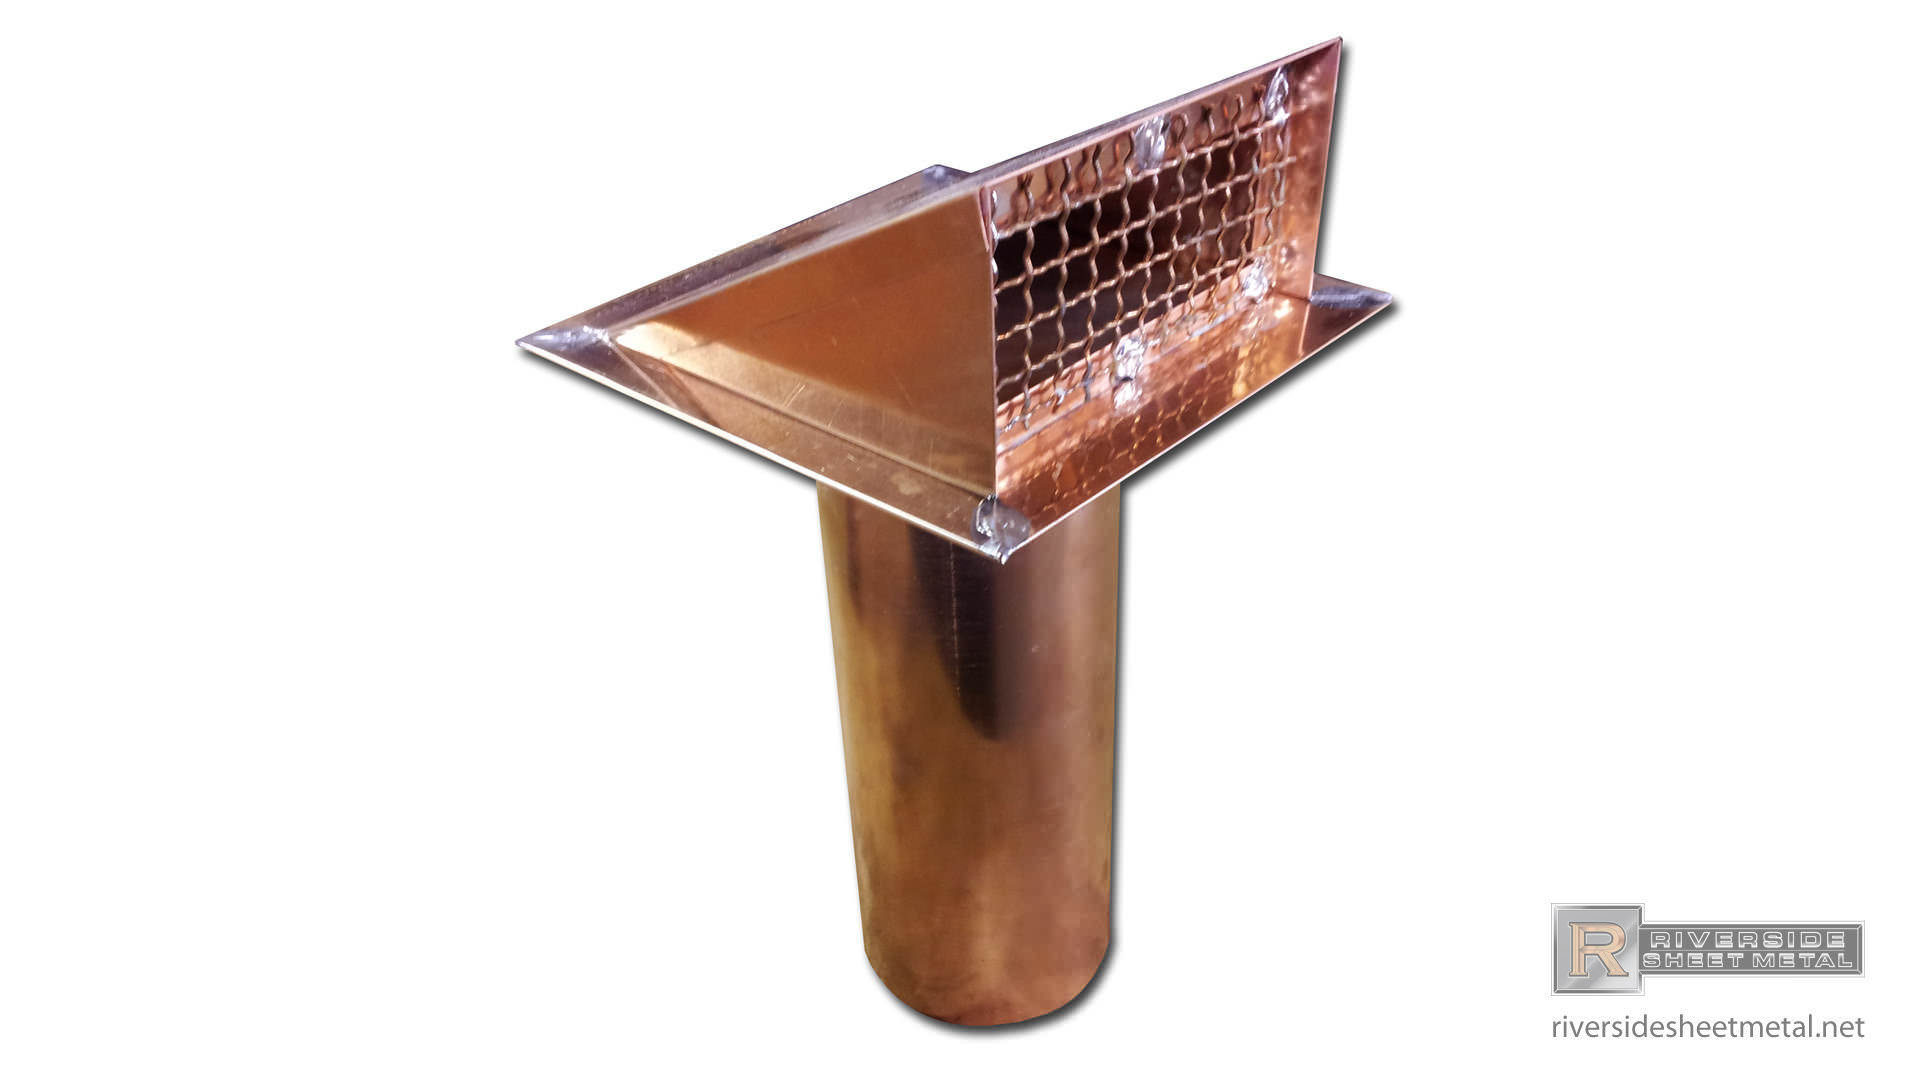 Copper dryer vent with flapper installed dryer vents for Kitchen yoshimoto summary